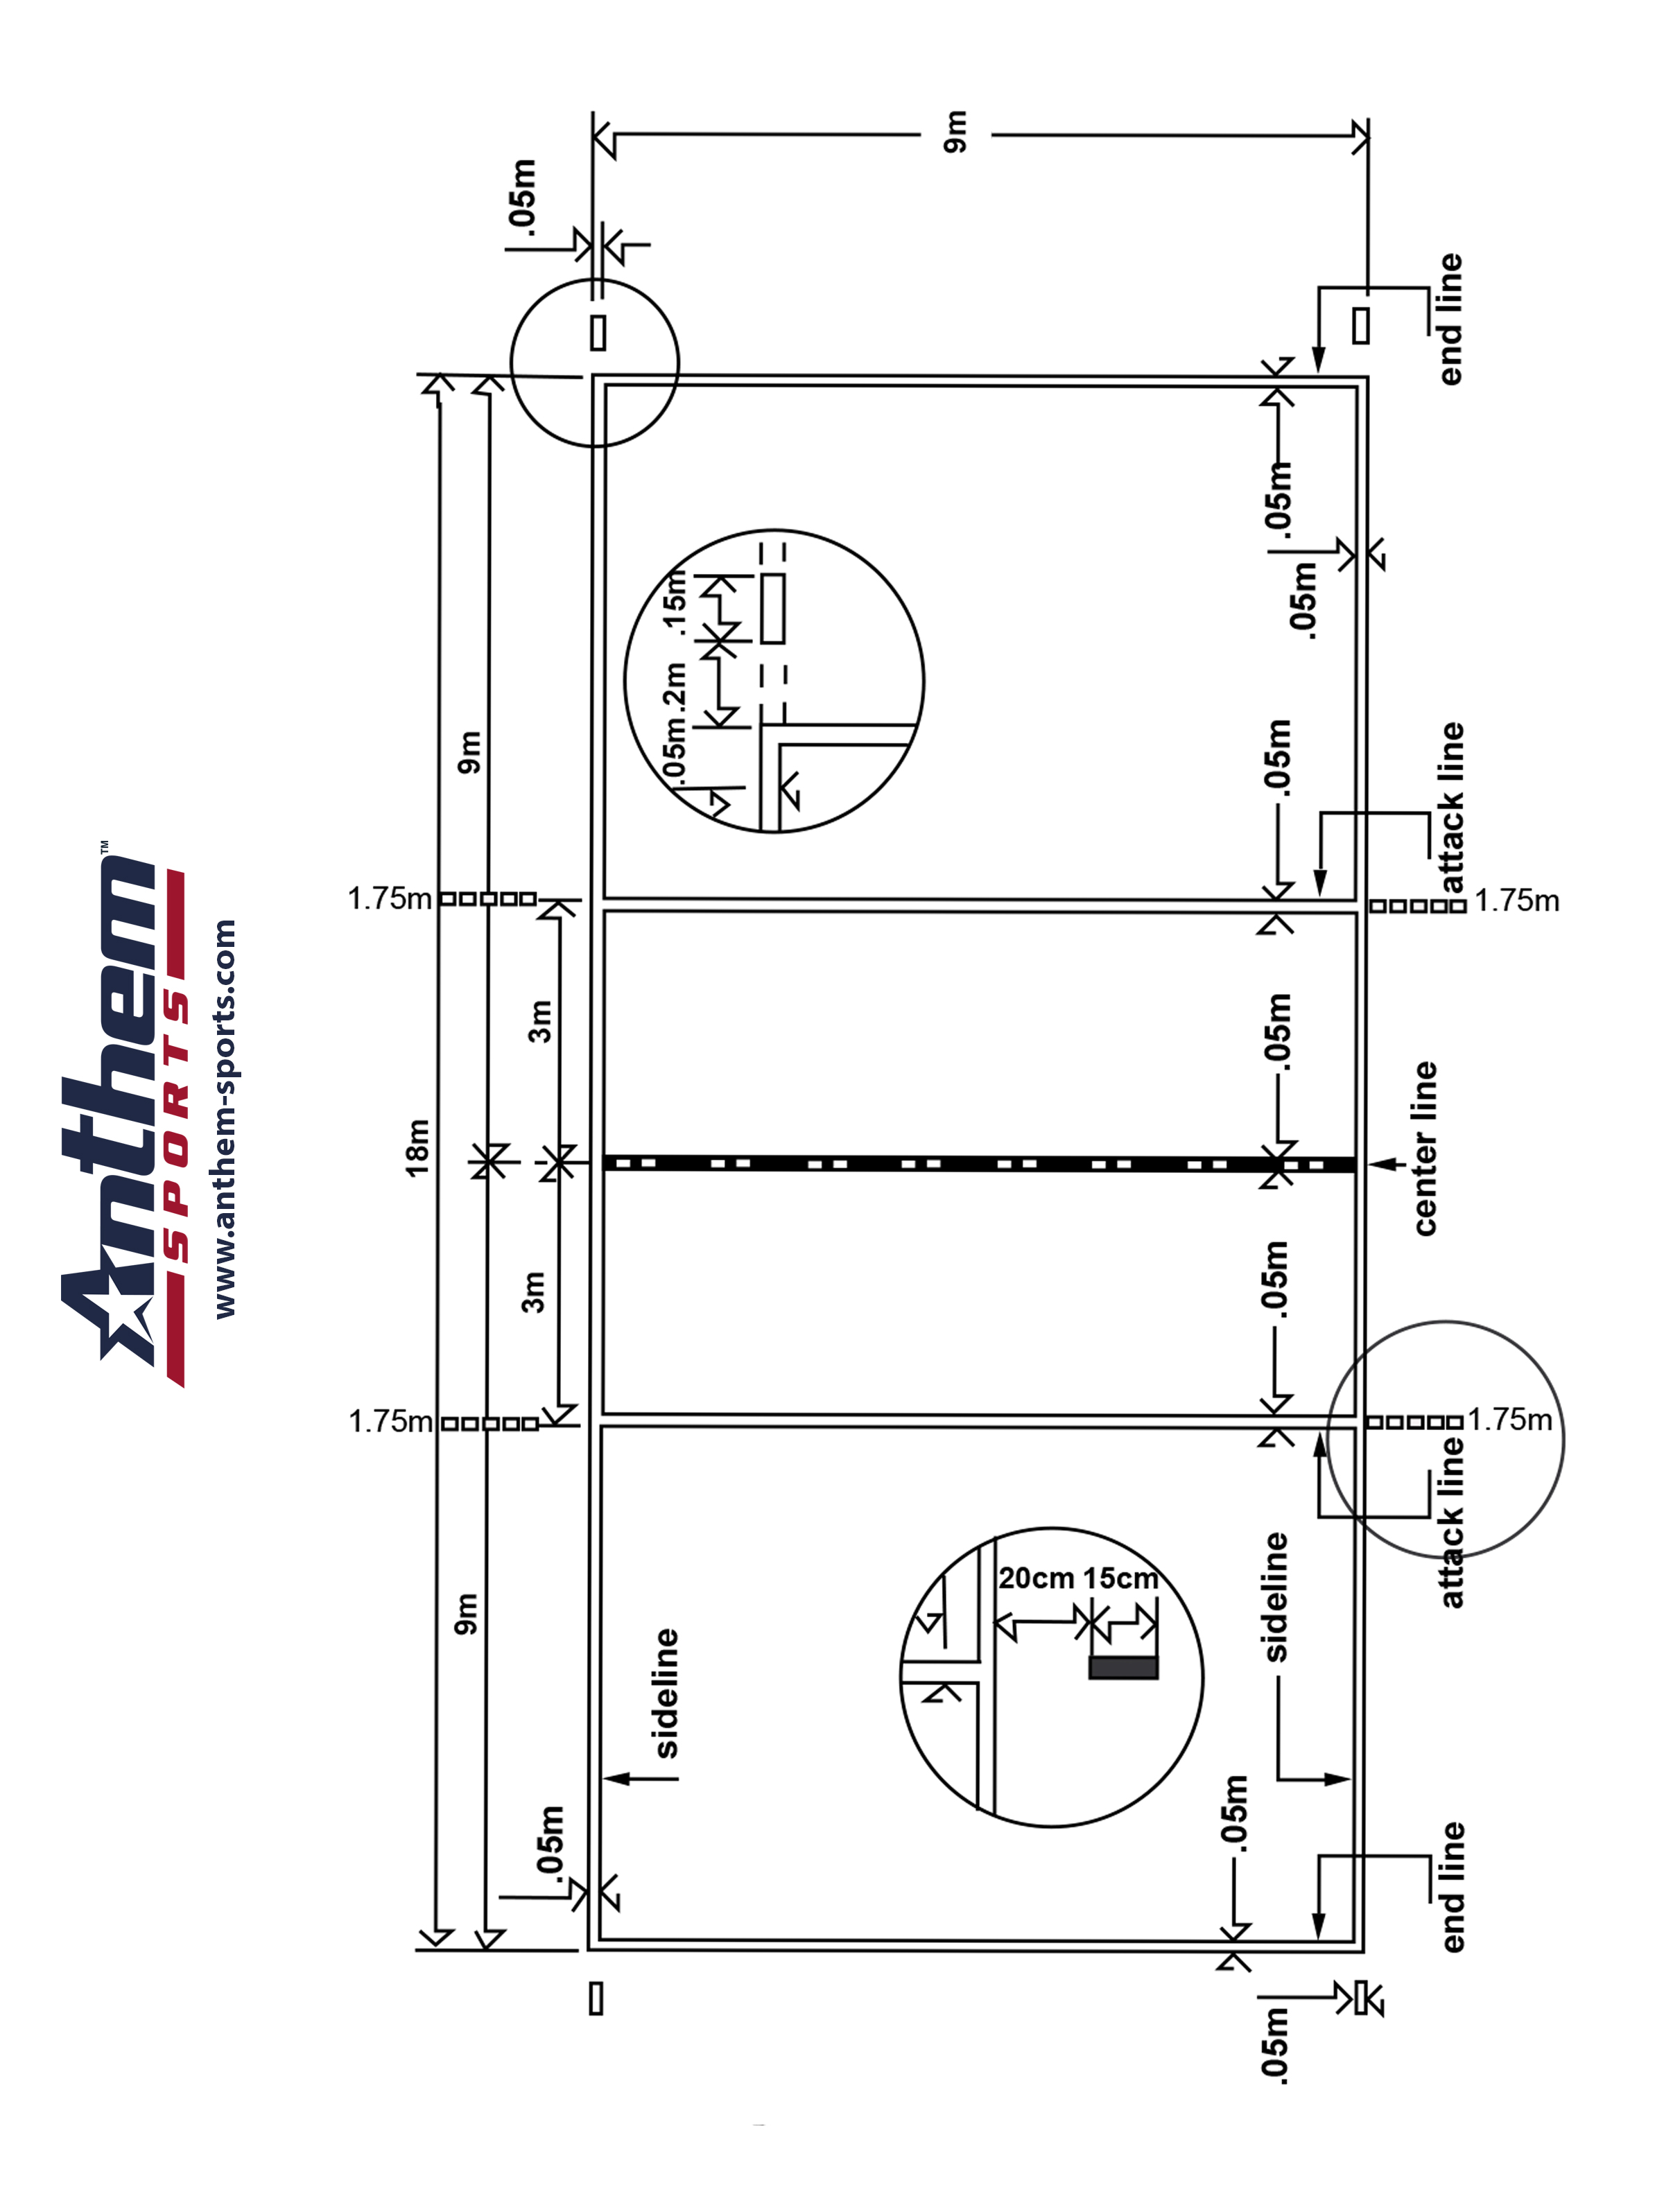 Indoor Volleyball Court Diagram